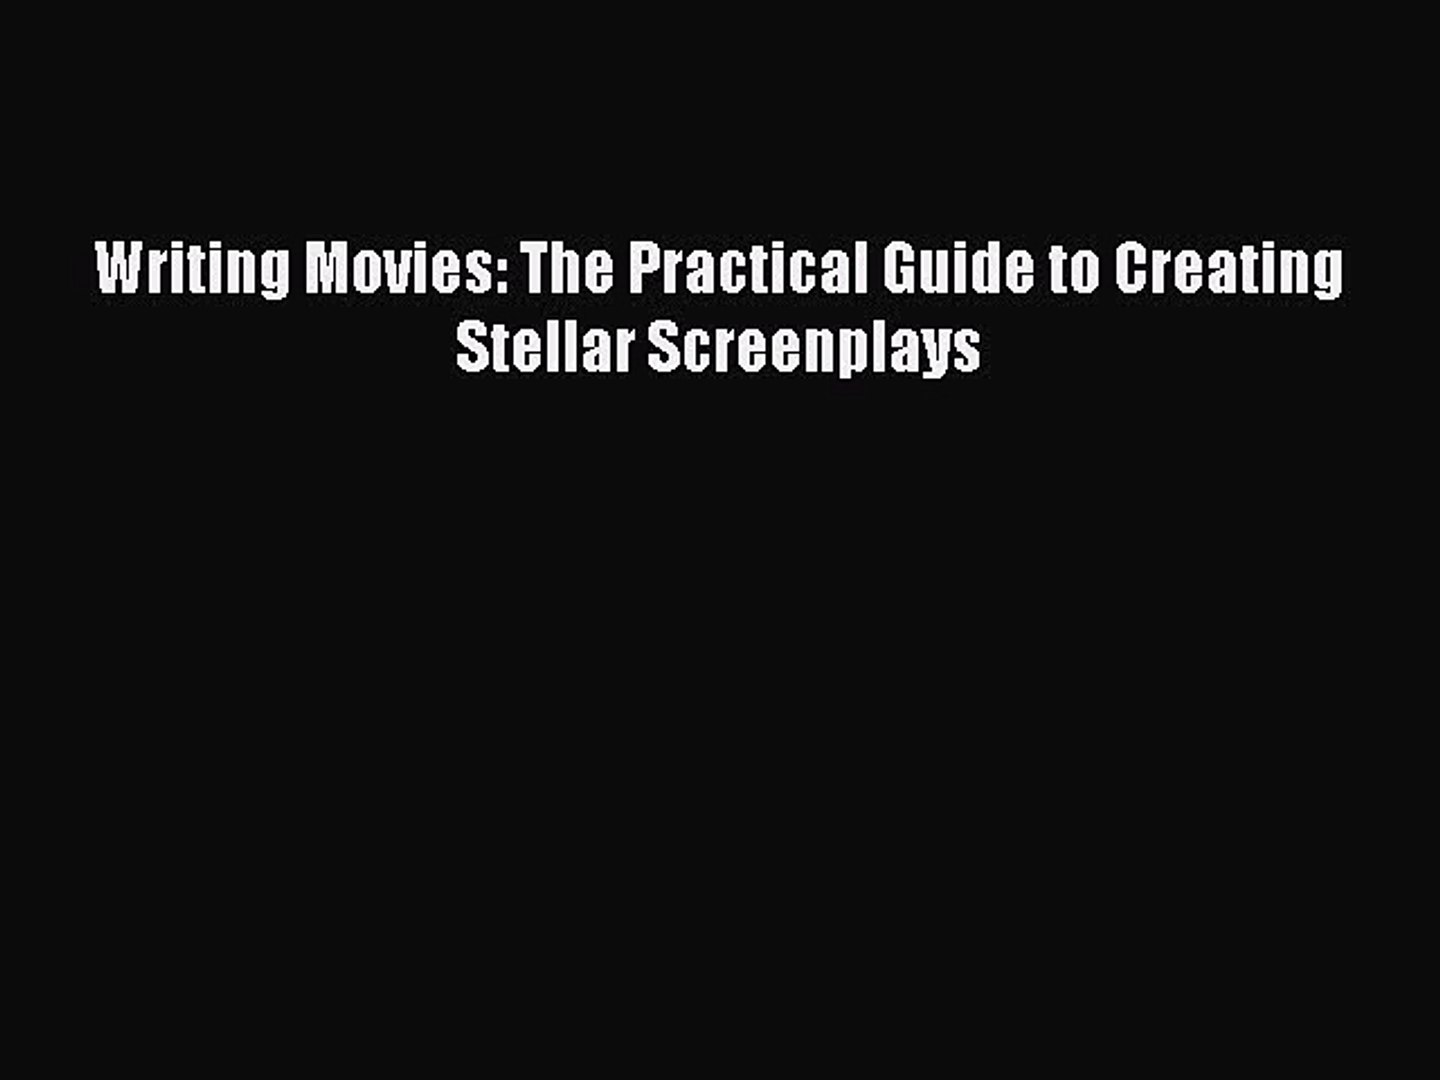 [PDF Download] Writing Movies: The Practical Guide to Creating Stellar Screenplays [Download]